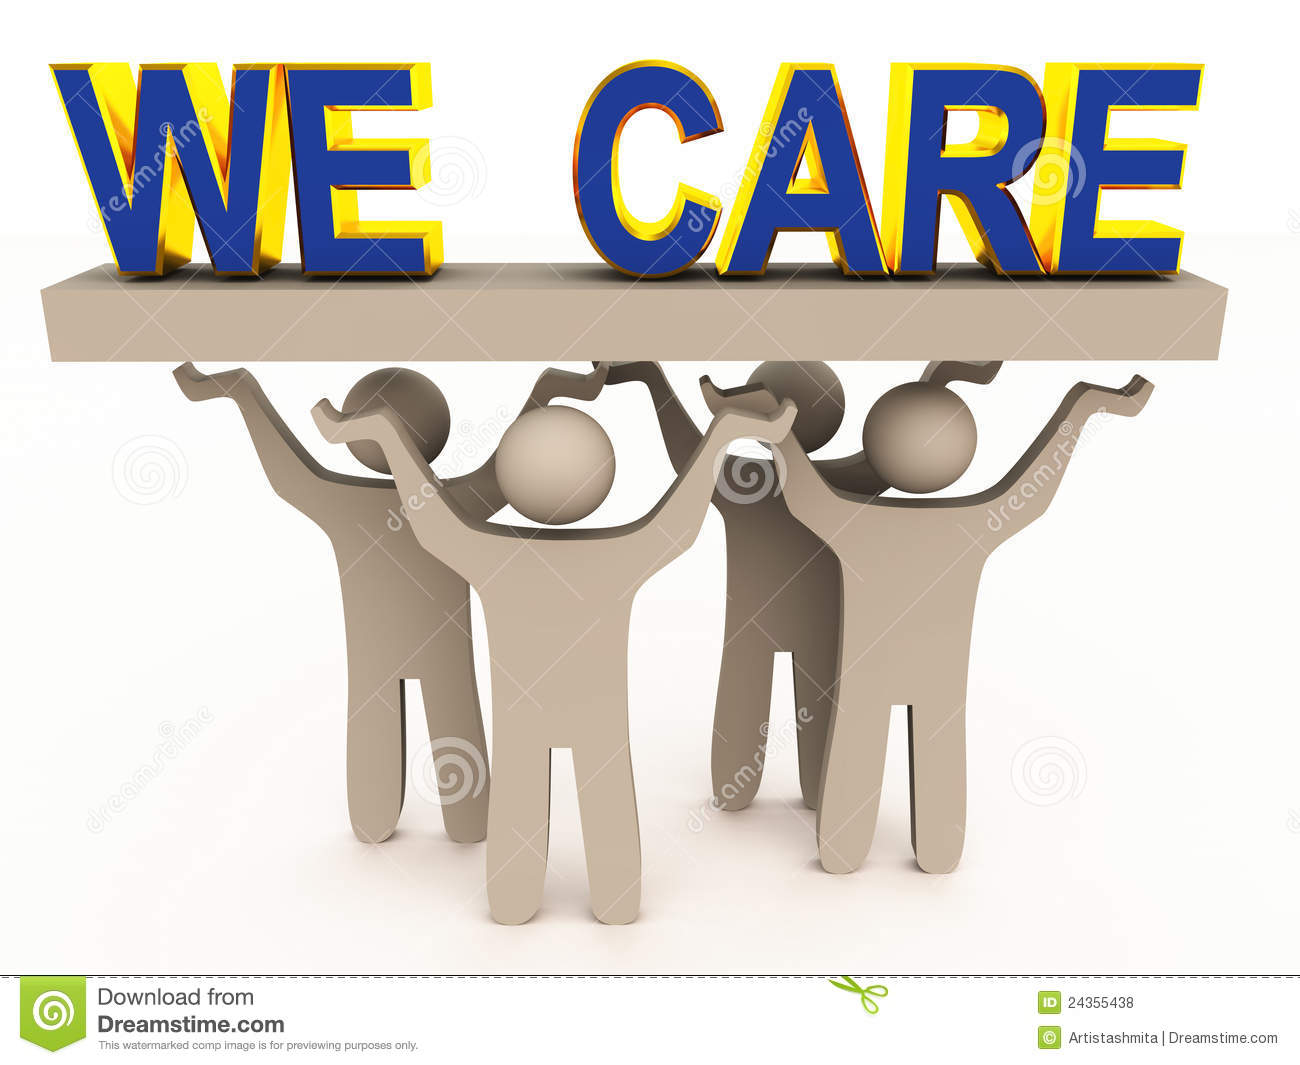 Customer Care Concept Image With Figures Holding We Care Words On A